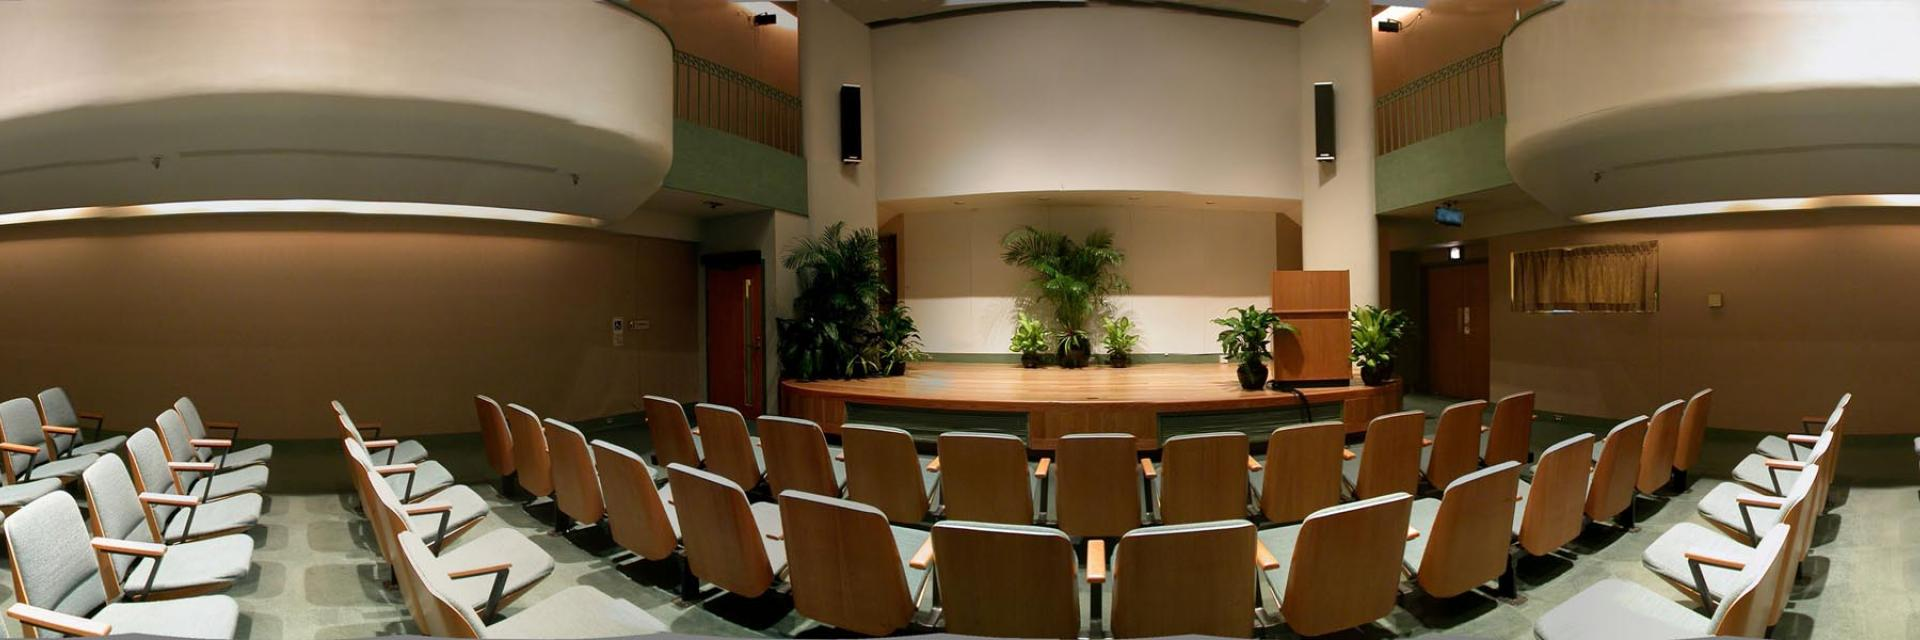 An image of a lecture hall on the Smithsonian Campus.